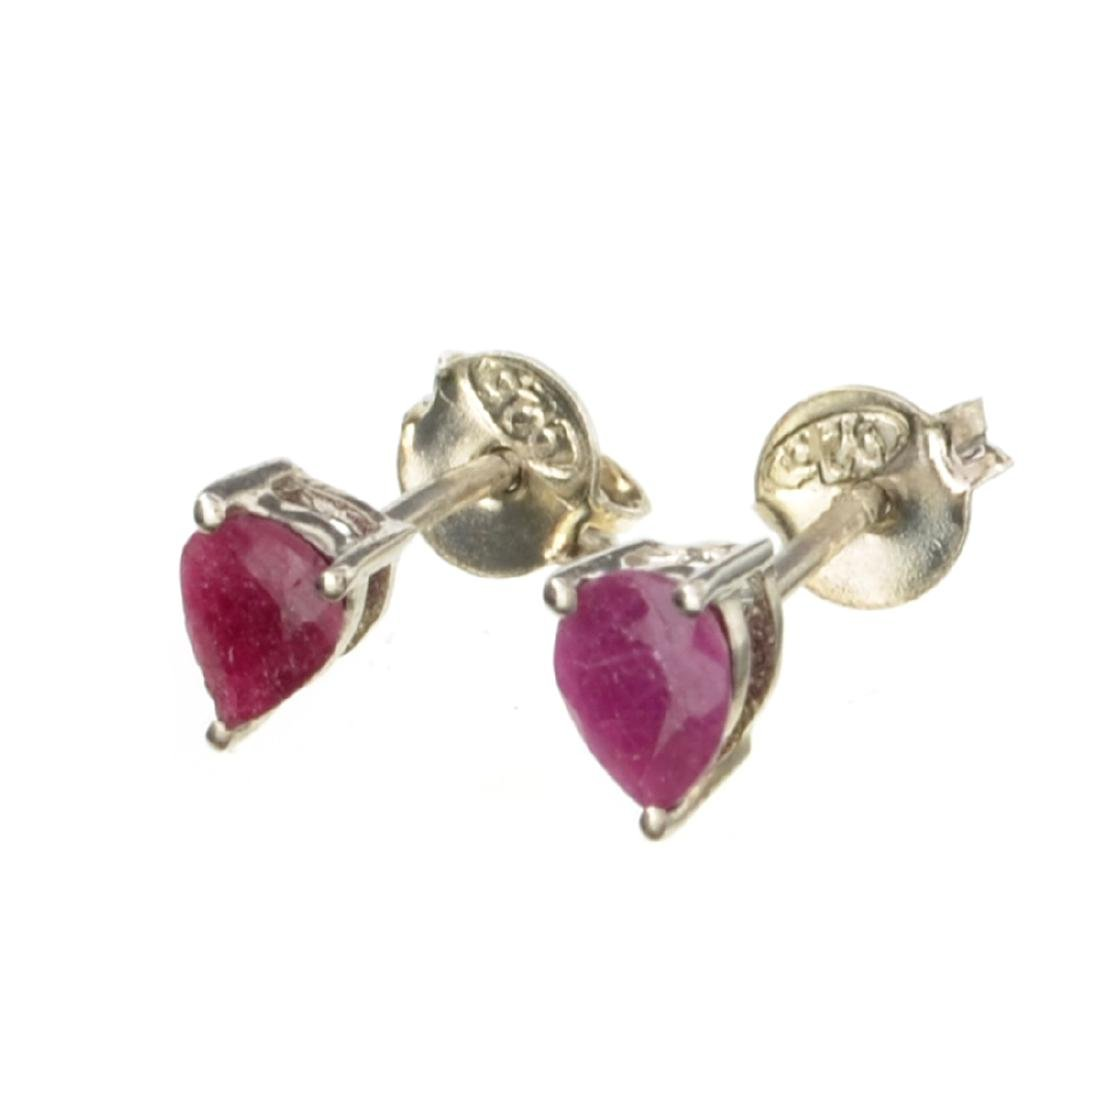 APP: 0.2k Fine Jewelry 0.90CT Pear Cut Ruby And